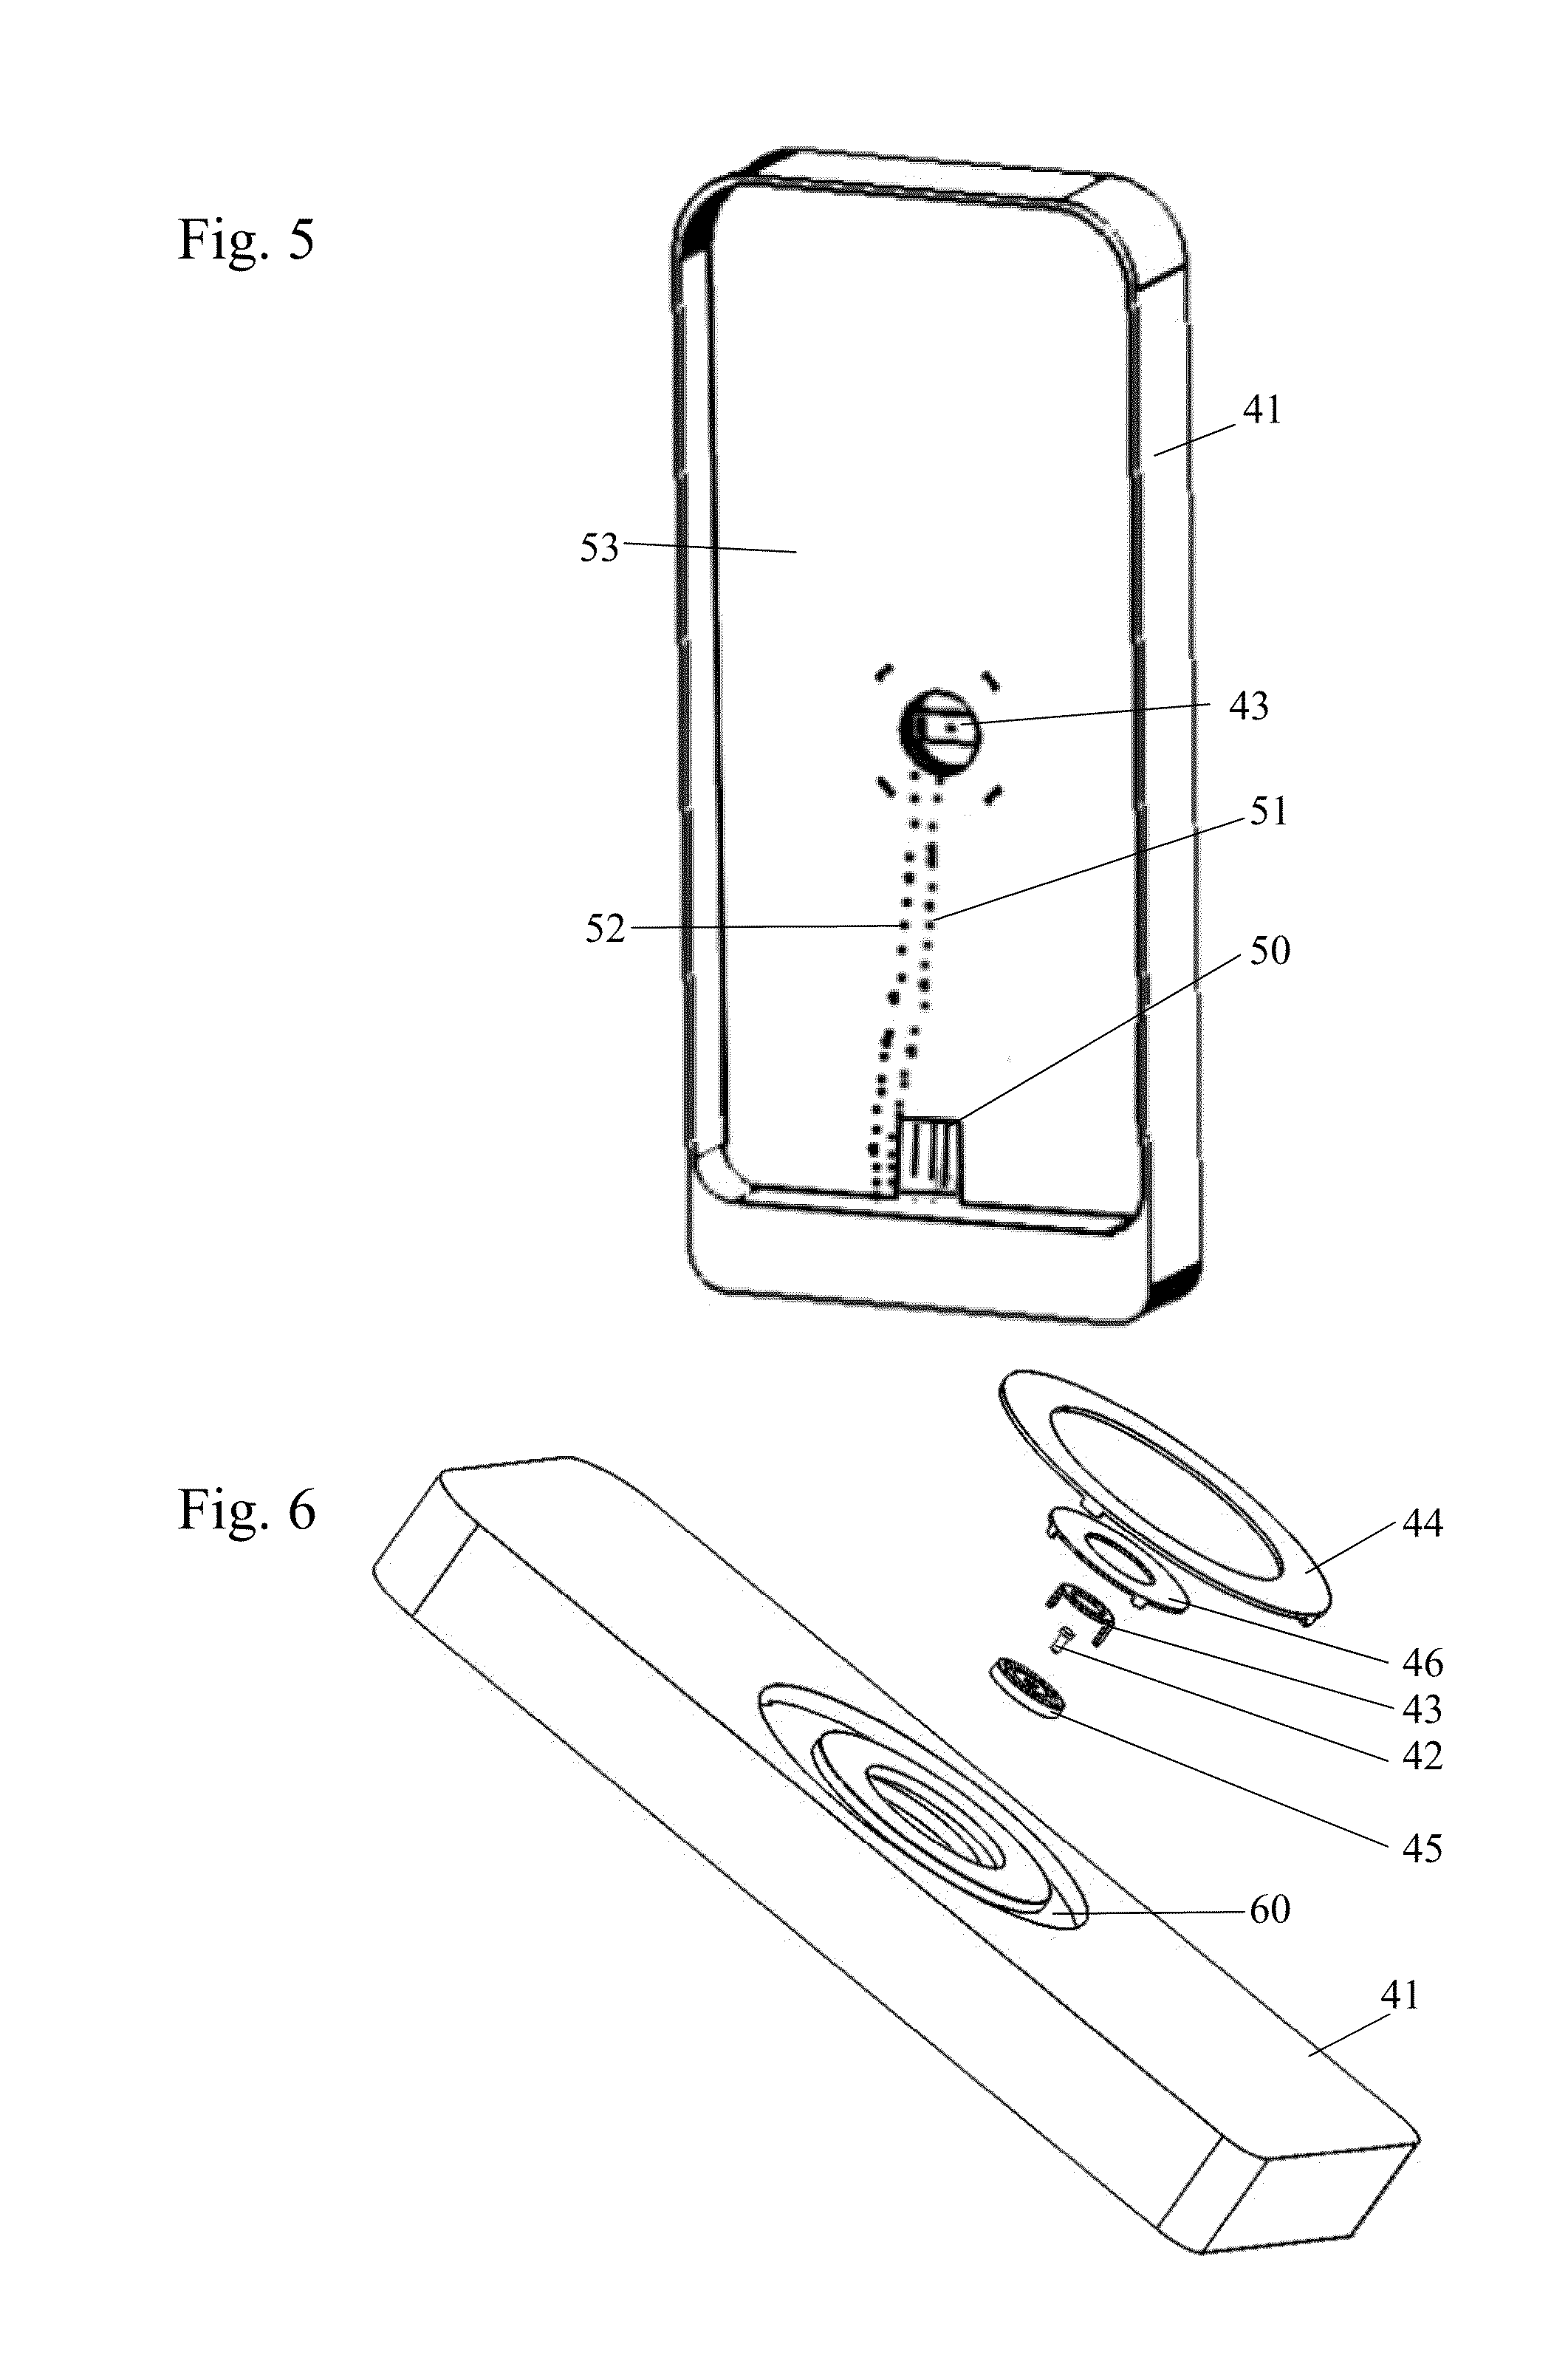 Us20160105047a1 Mobile Device Mounting And Charging System